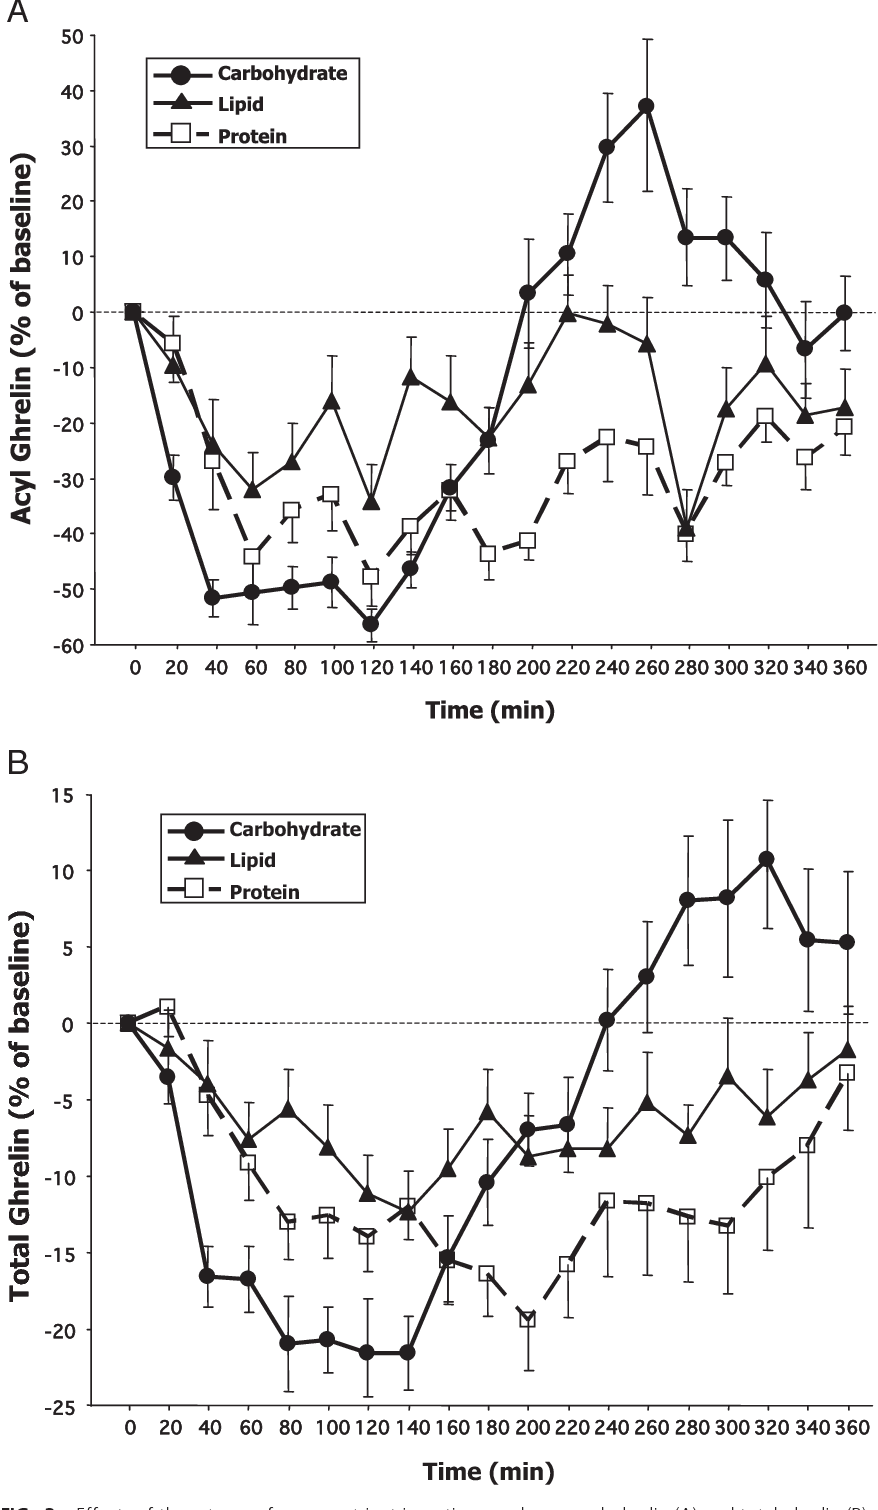 Acyl And Total Ghrelin Are Suppressed Strongly By Ingested Proteins